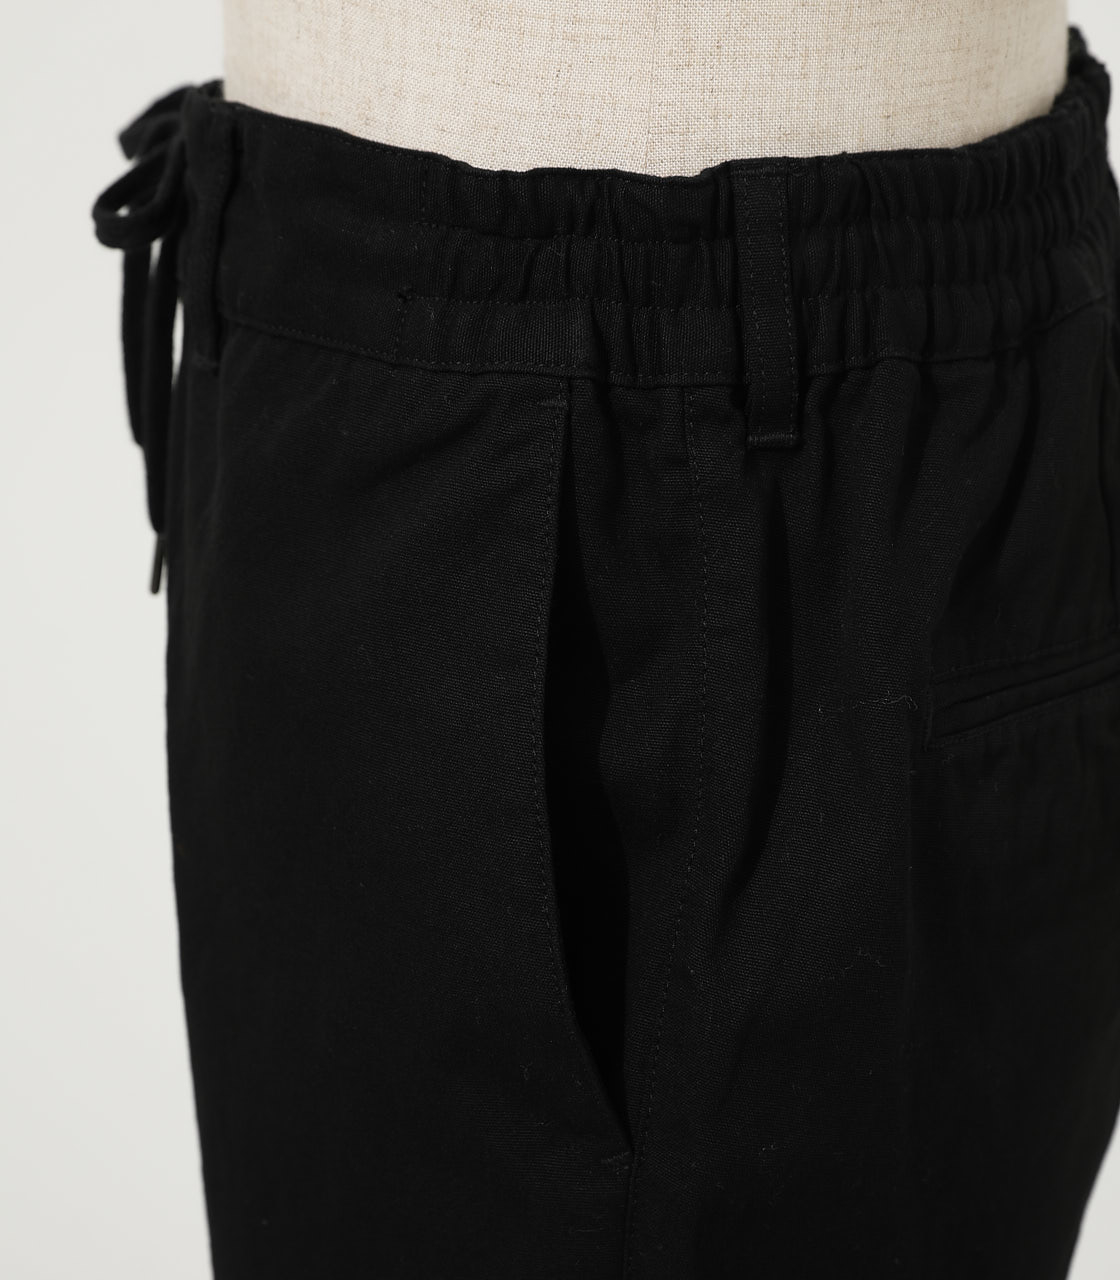 TWILL COLOR SHORTS 詳細画像 BLK 7